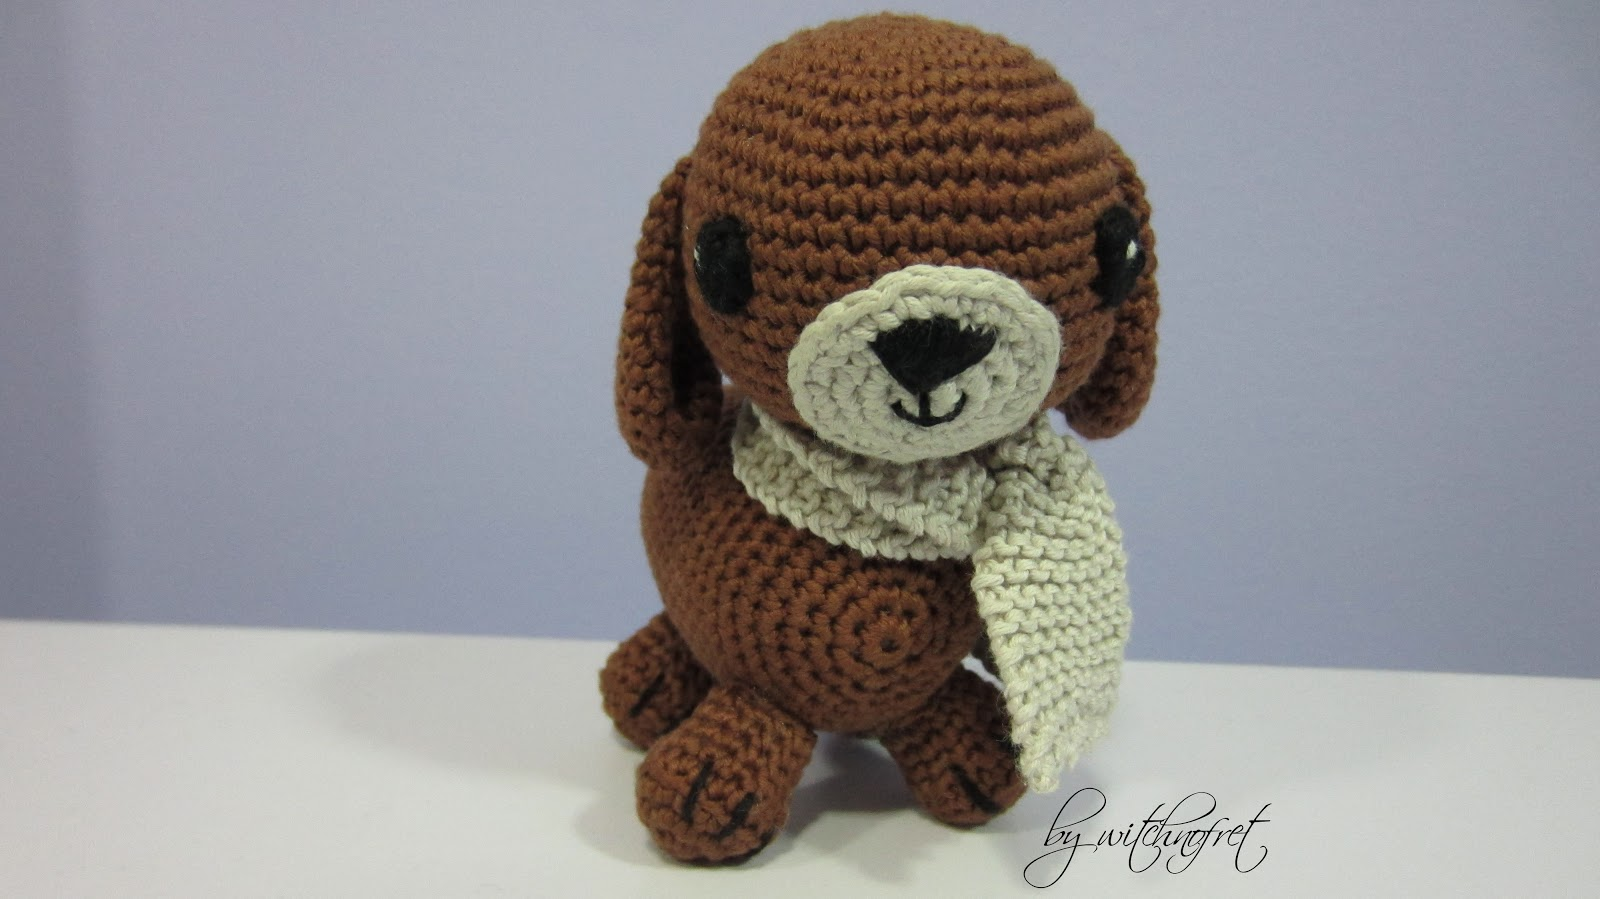 Dolphin Amigurumi Free Crochet Pattern : Toby the crochet dog (with free pattern)